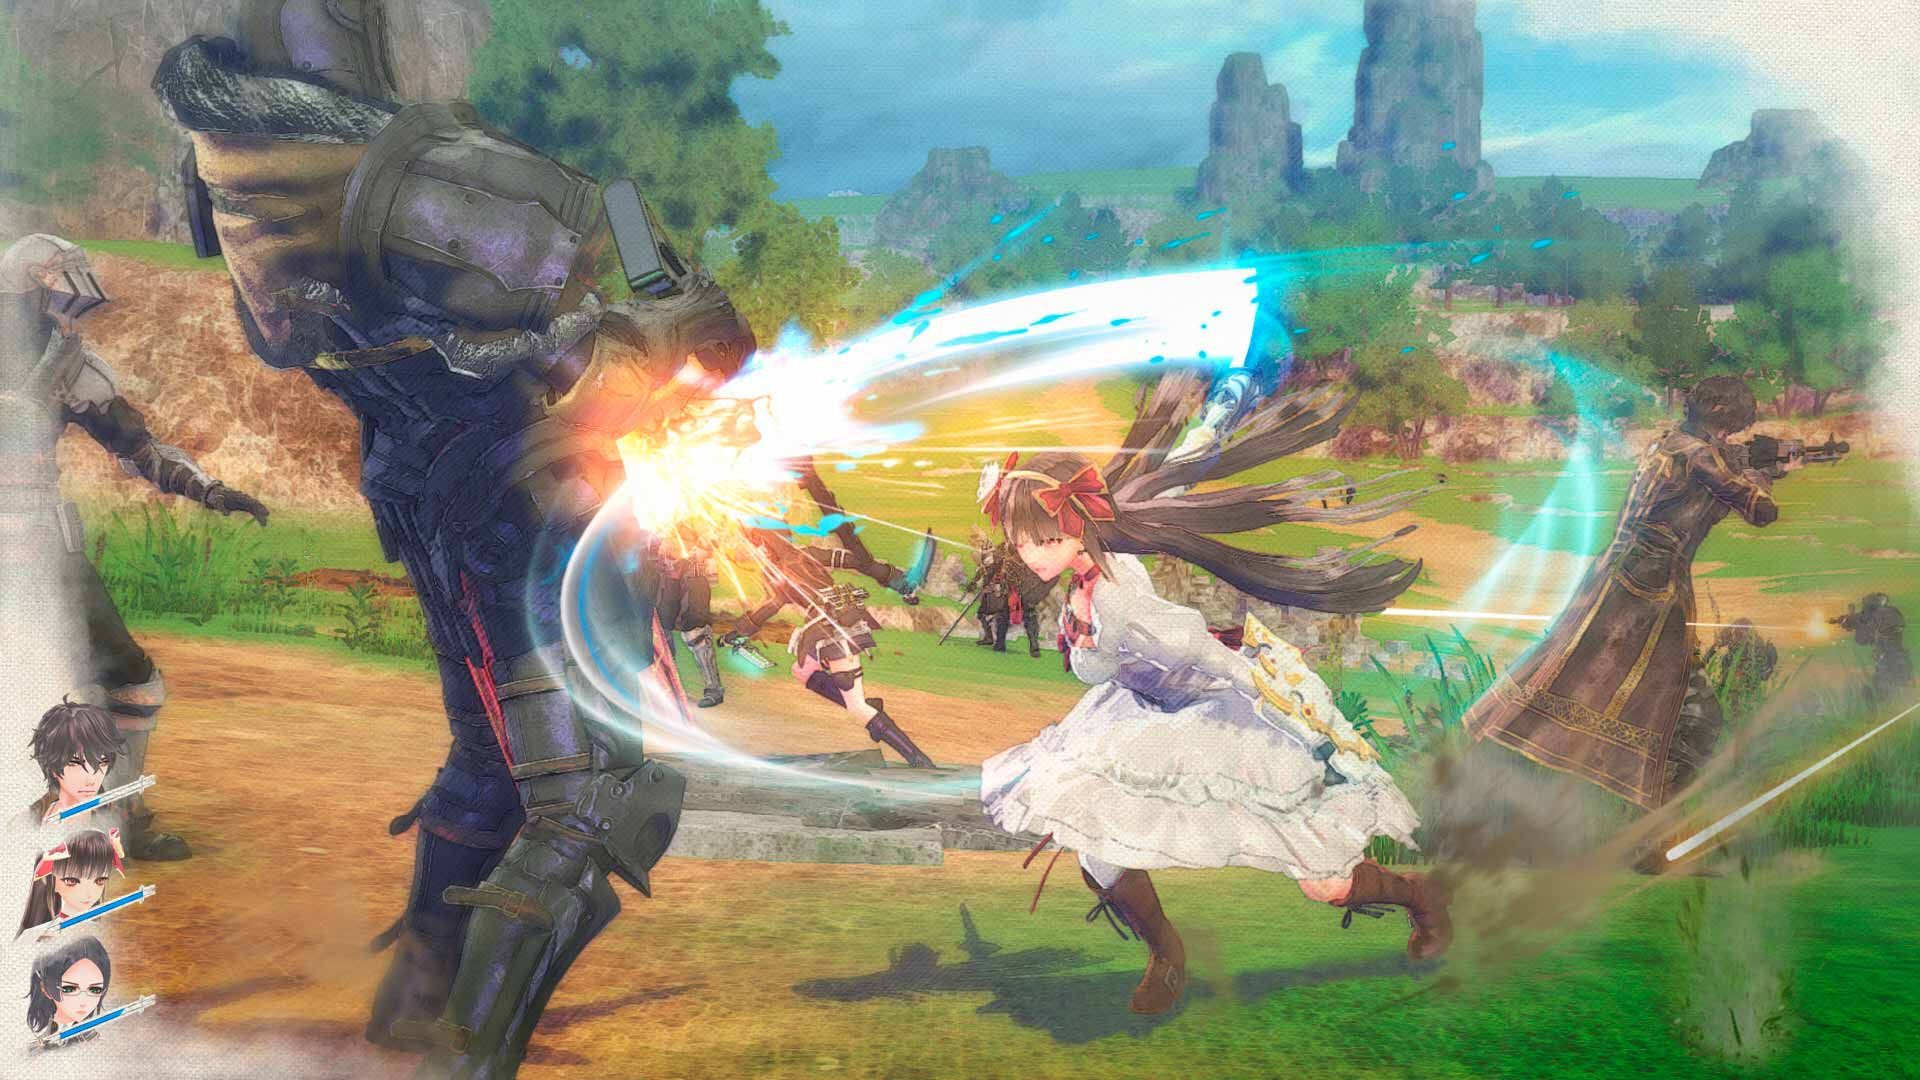 valkyria-revolution-screenshot-2